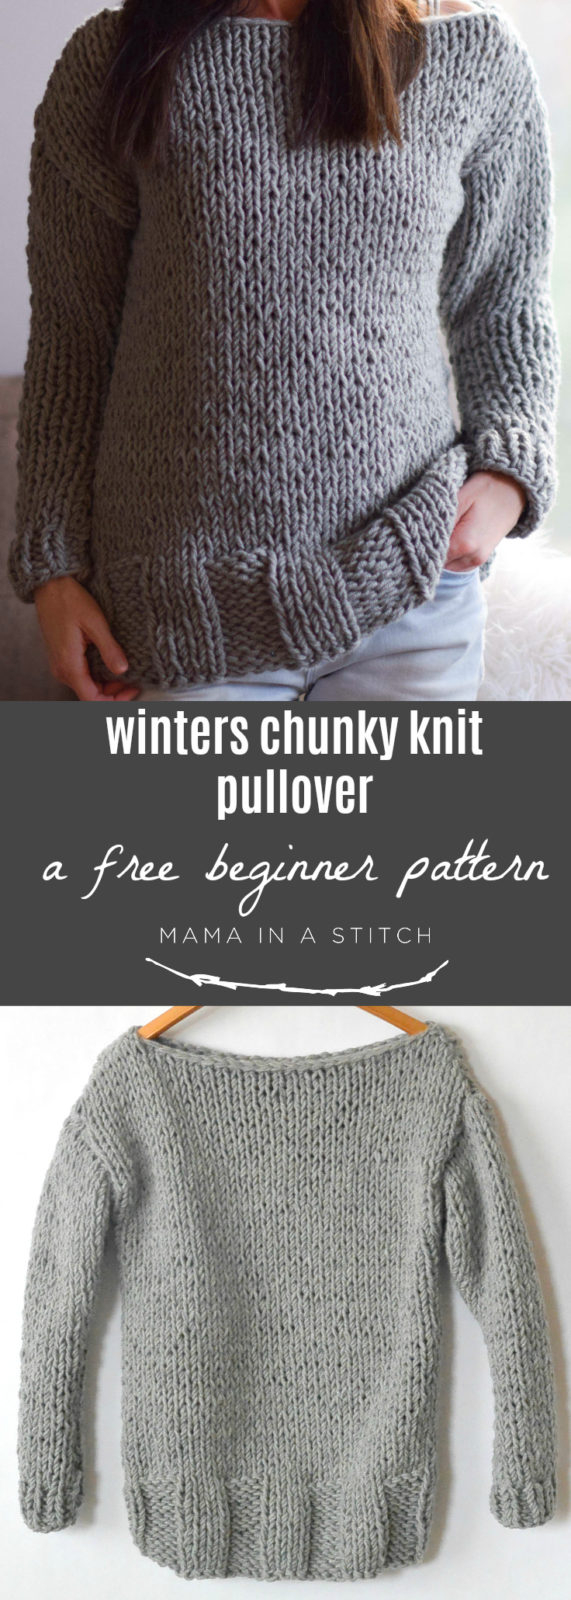 Easy Jumper Knitting Pattern Winters Chunky Easy Knit Pullover Pattern Mama In A Stitch